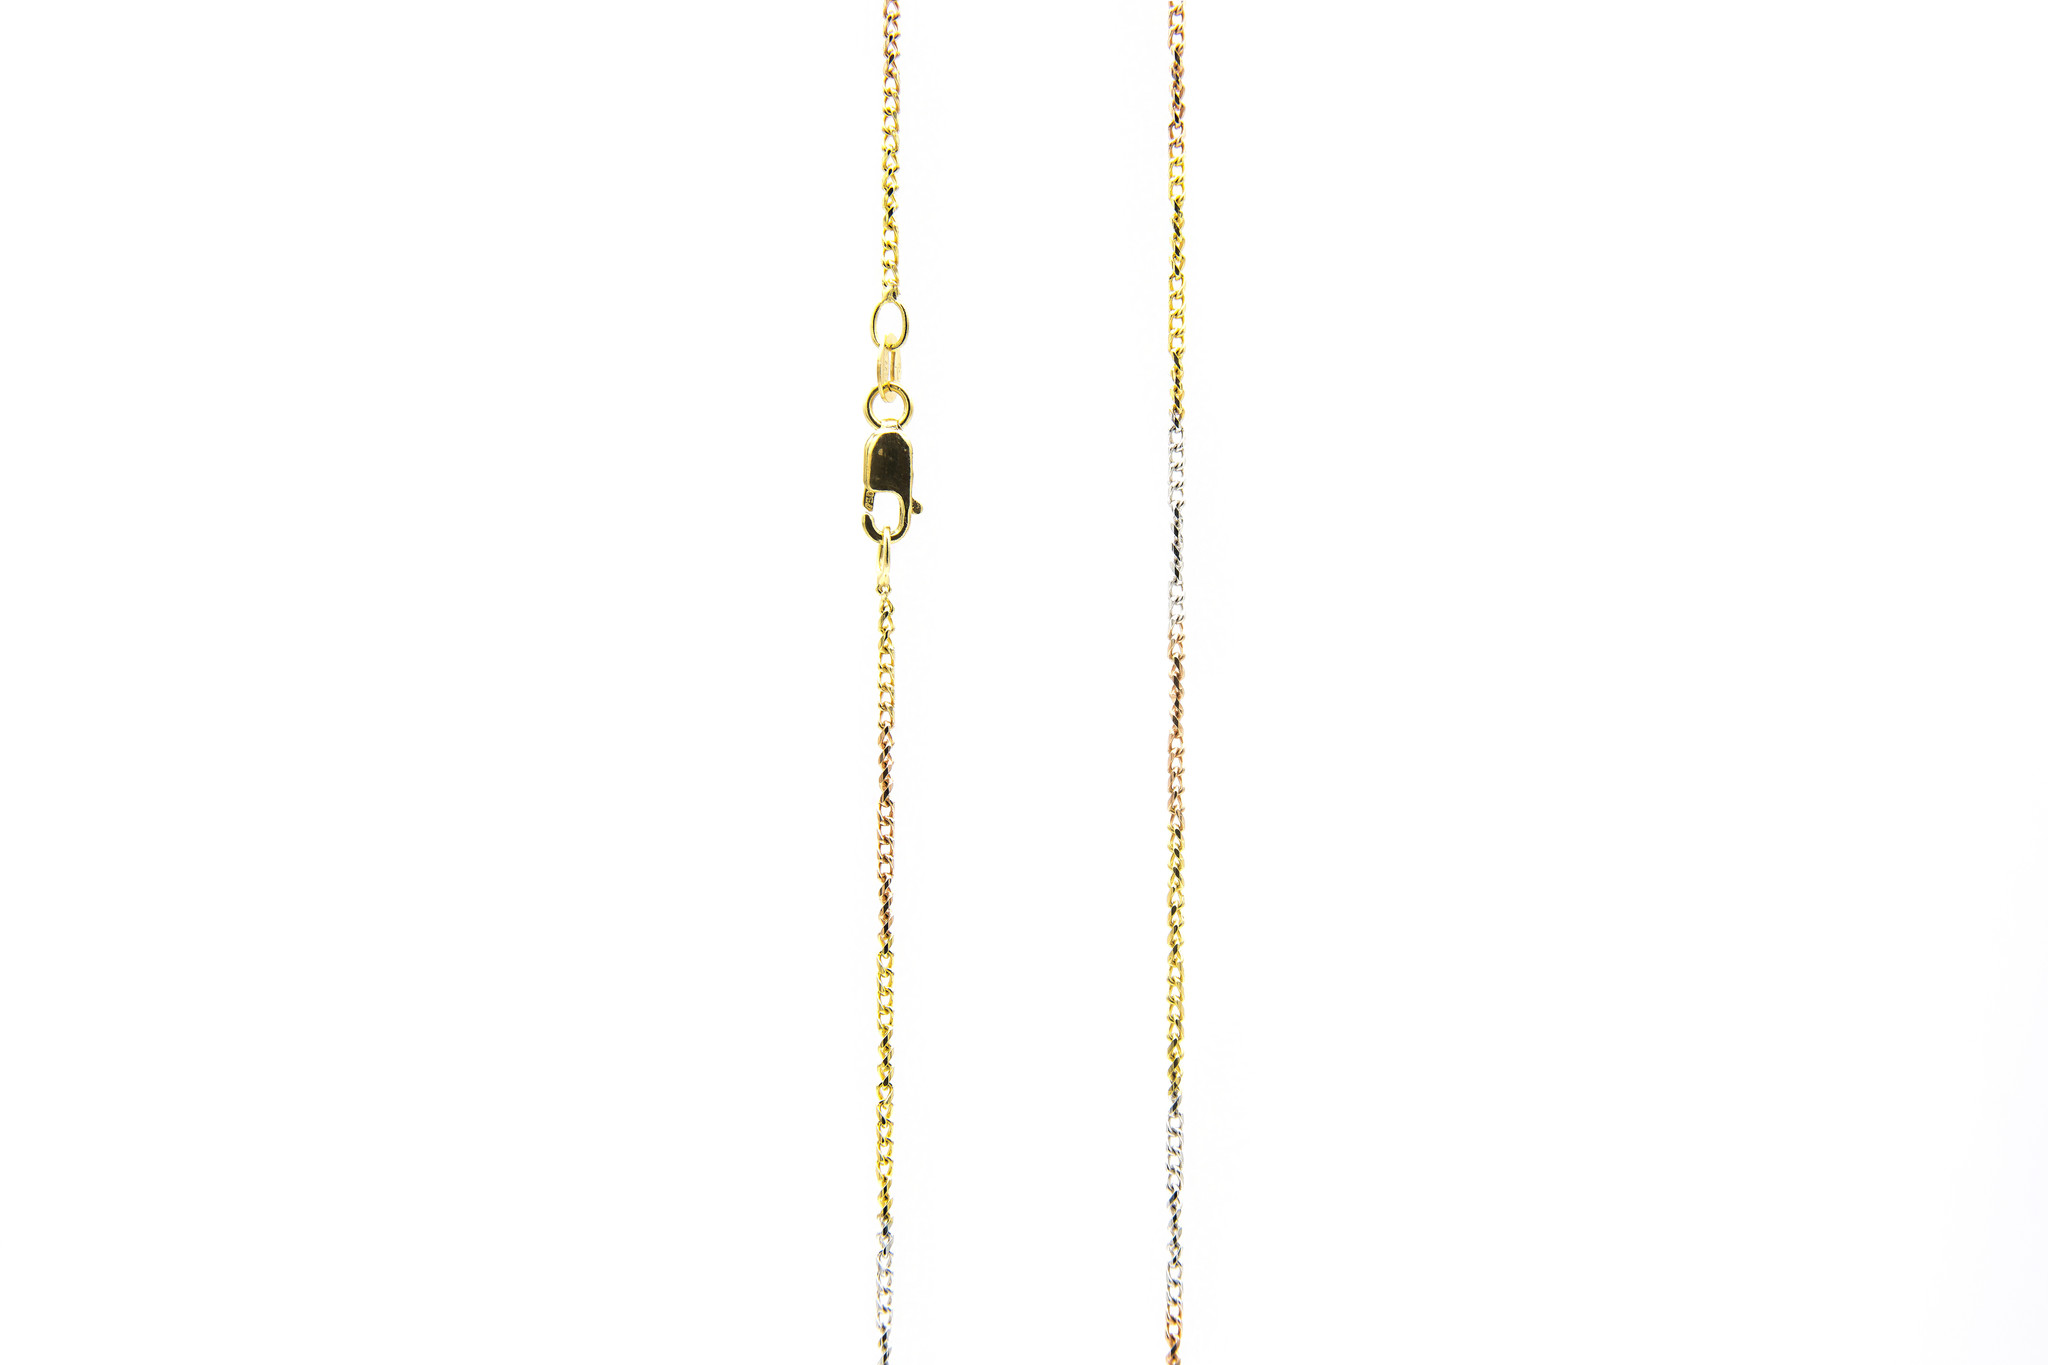 Ketting tricolor-1